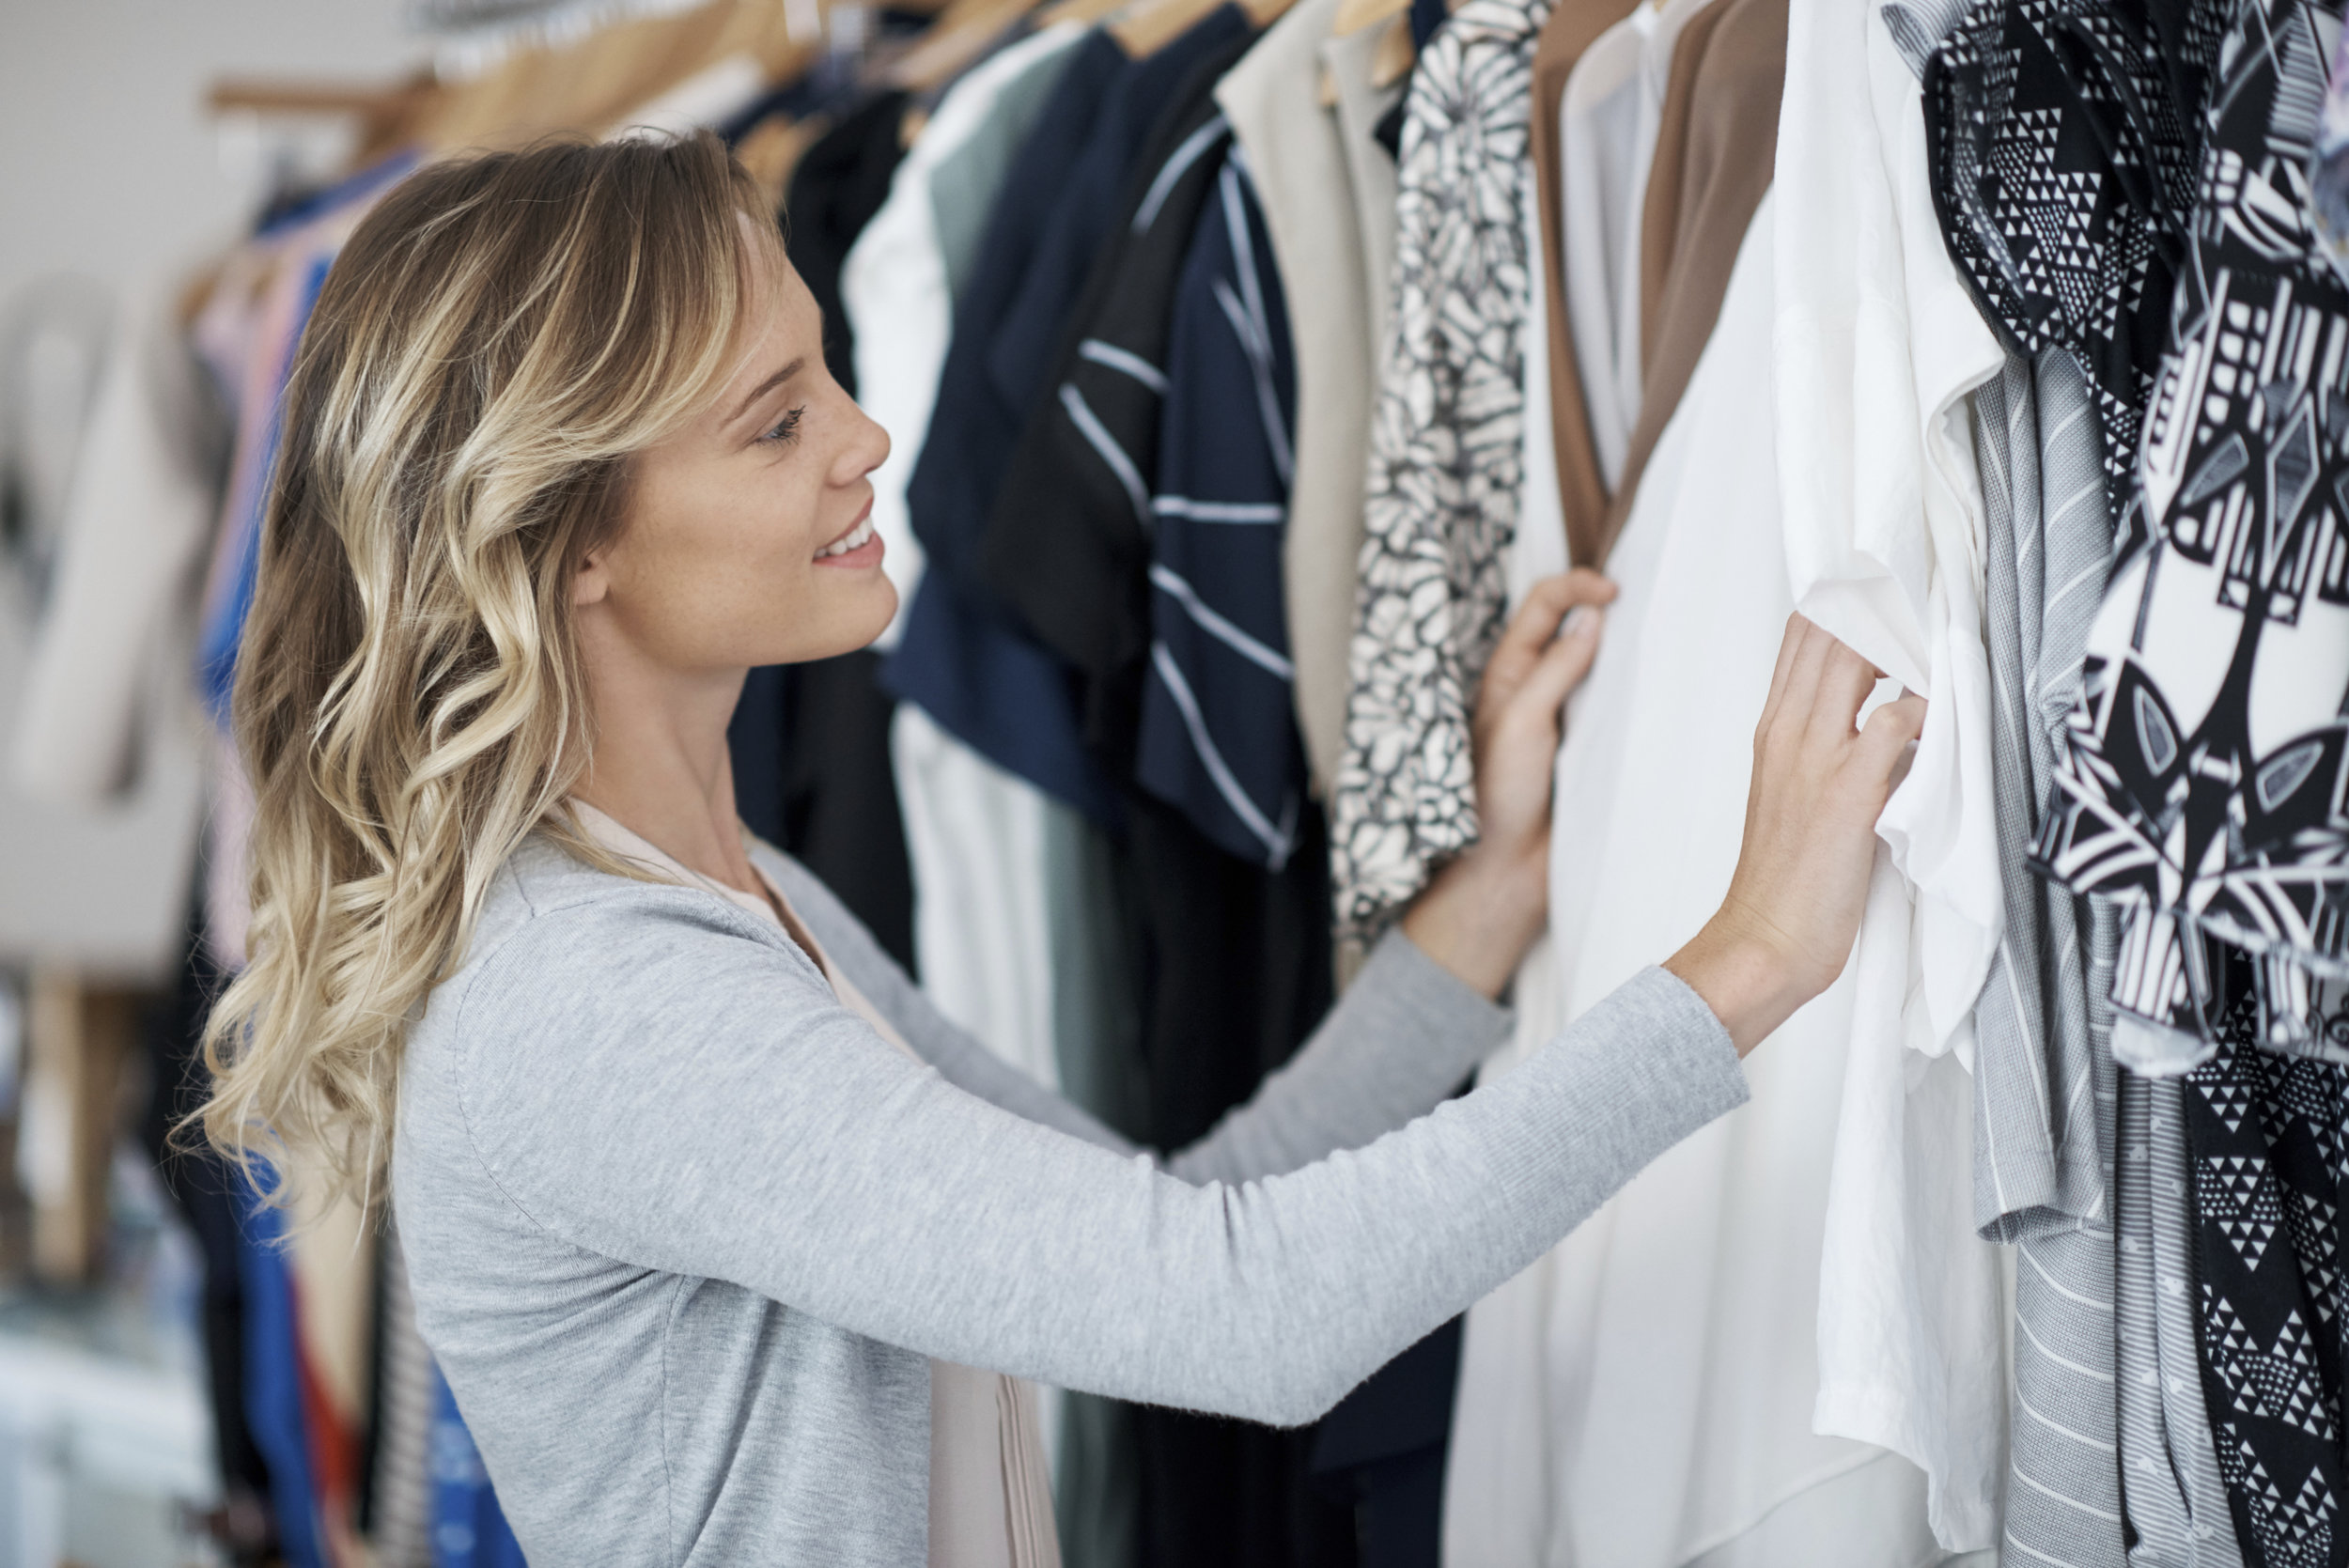 Personal Stylist Shopping Tour